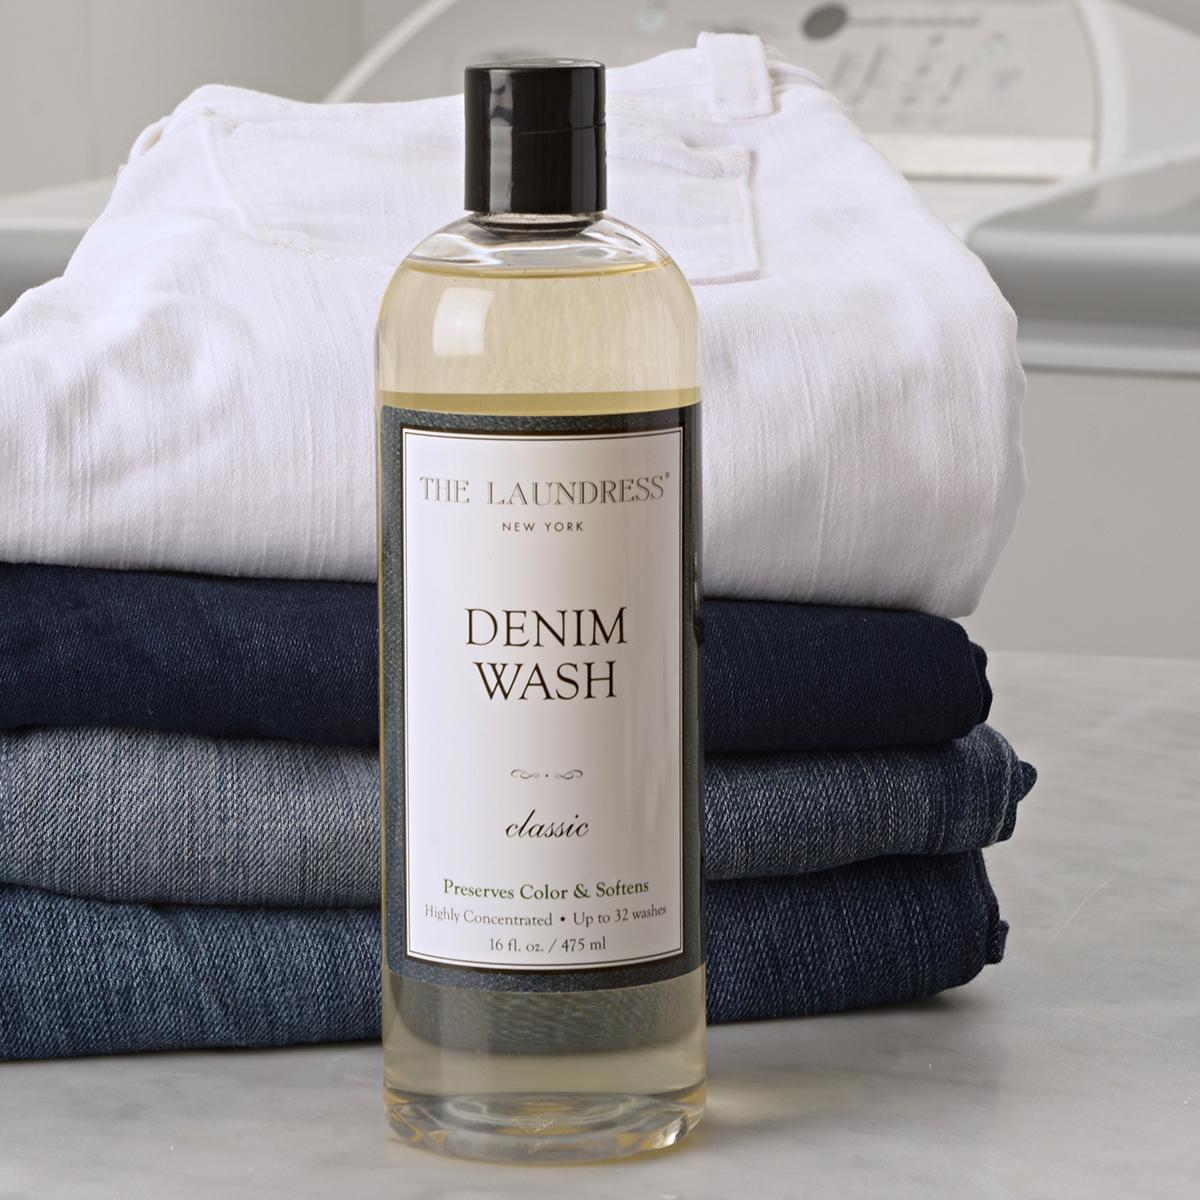 The Laundress 16 oz. Denim Wash